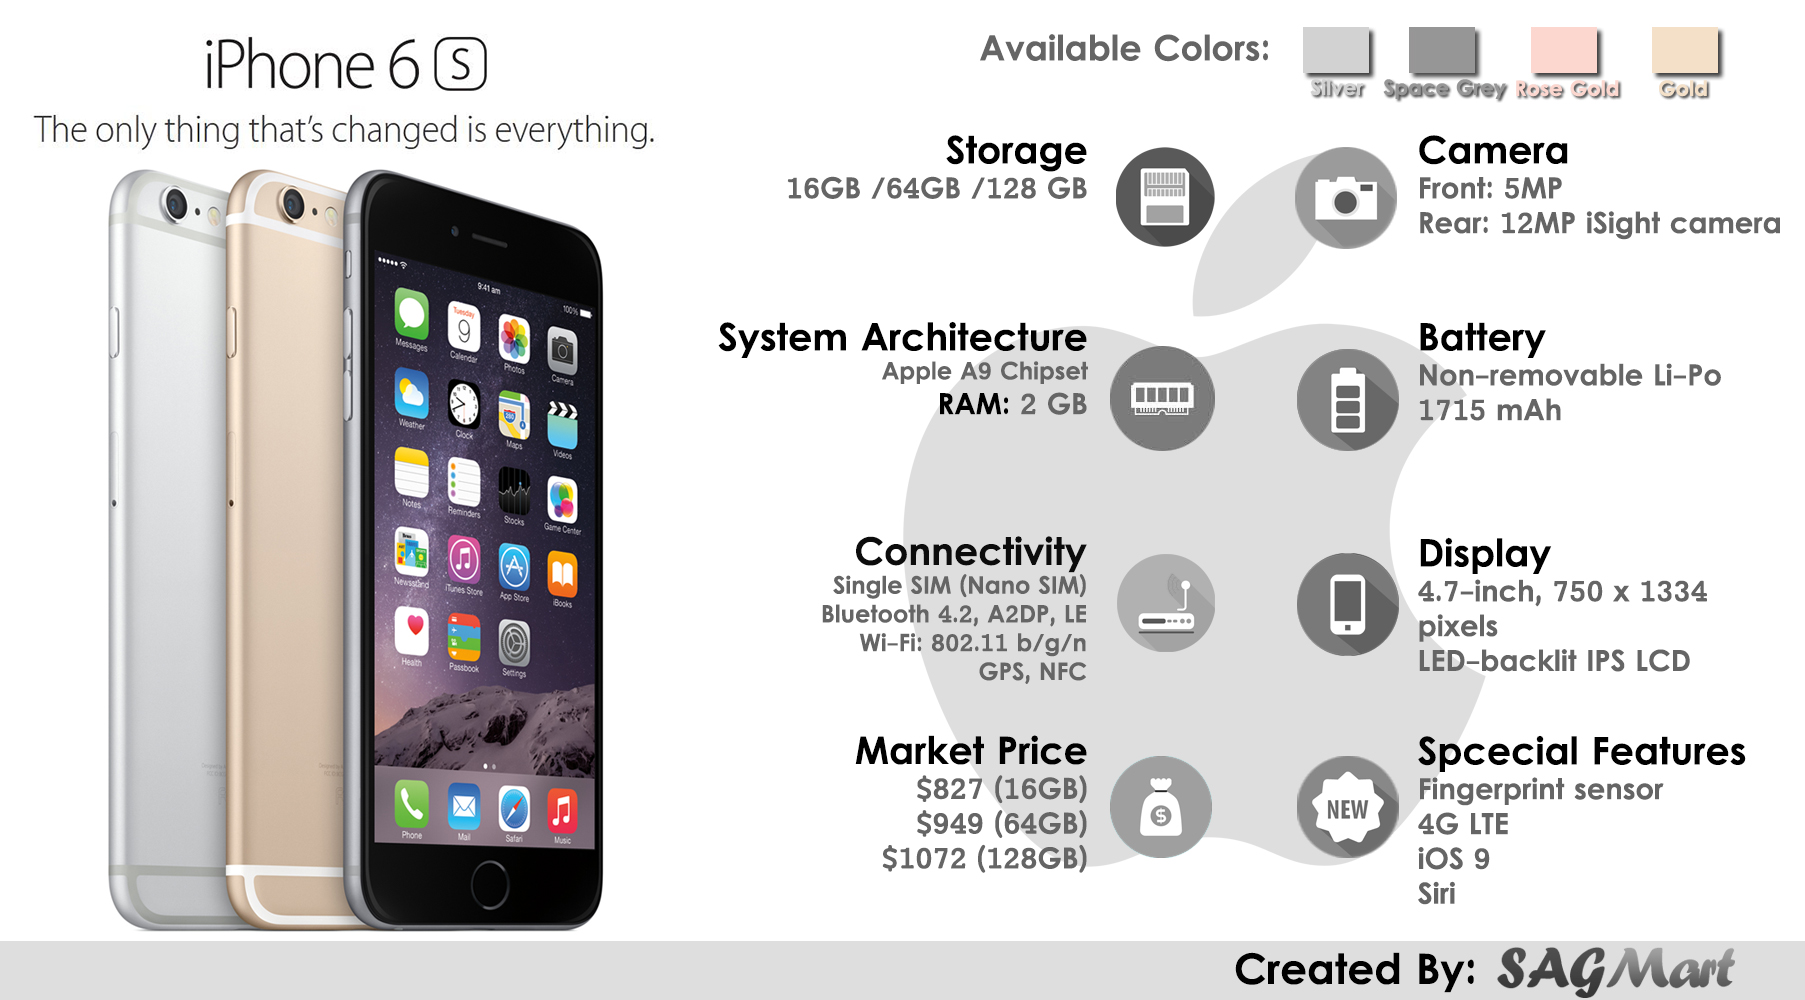 Apple iPhone 6s Specifications Infographic